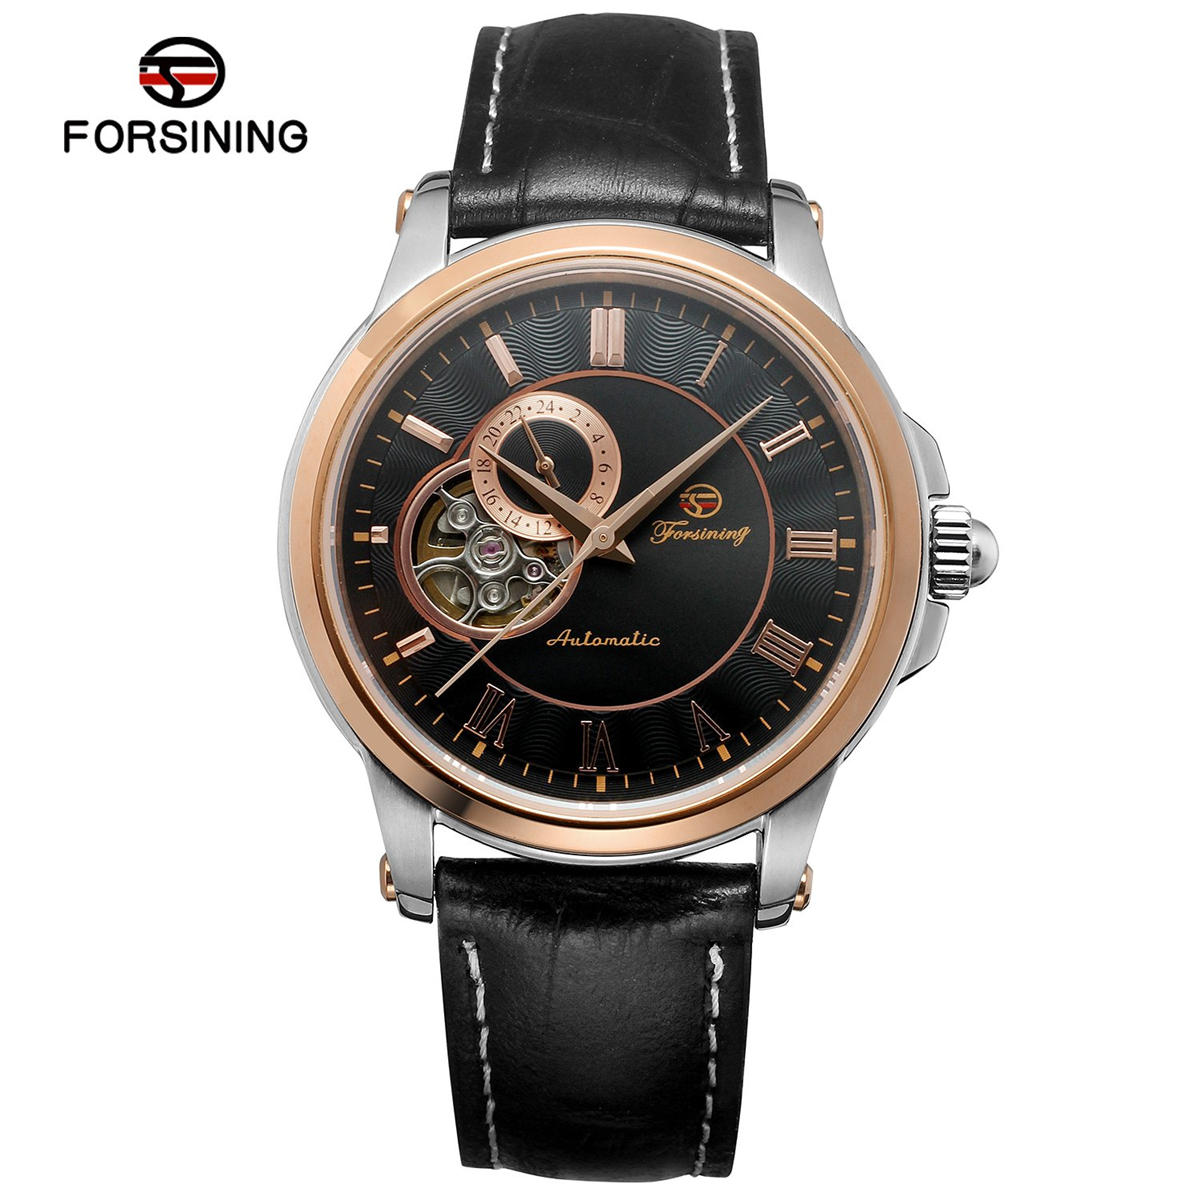 FORSINING Mechanical Watches Men Leather Strap Skeleton Gold Automatic Mechanical Mens Watches Waterproof Self-winding Clock forsining gold hollow automatic mechanical watches men luxury brand leather strap casual vintage skeleton watch clock relogio